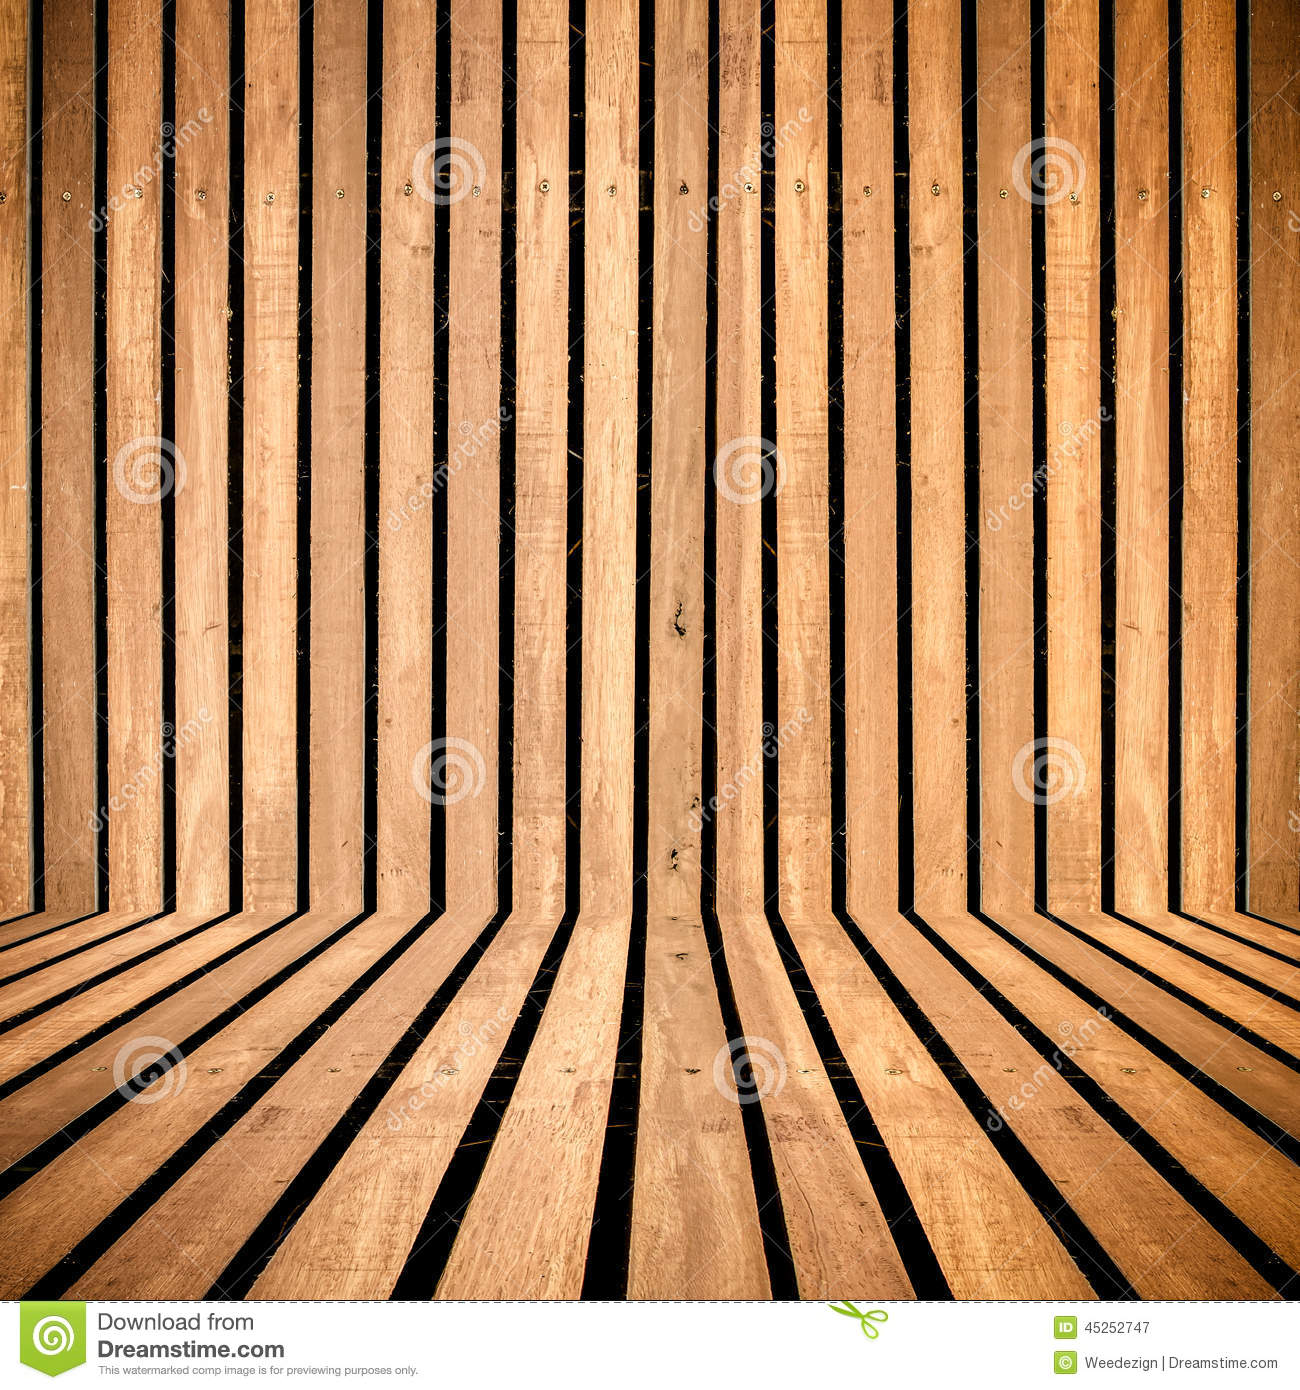 Vertical Wooden Strip Room Perspective Background Stock